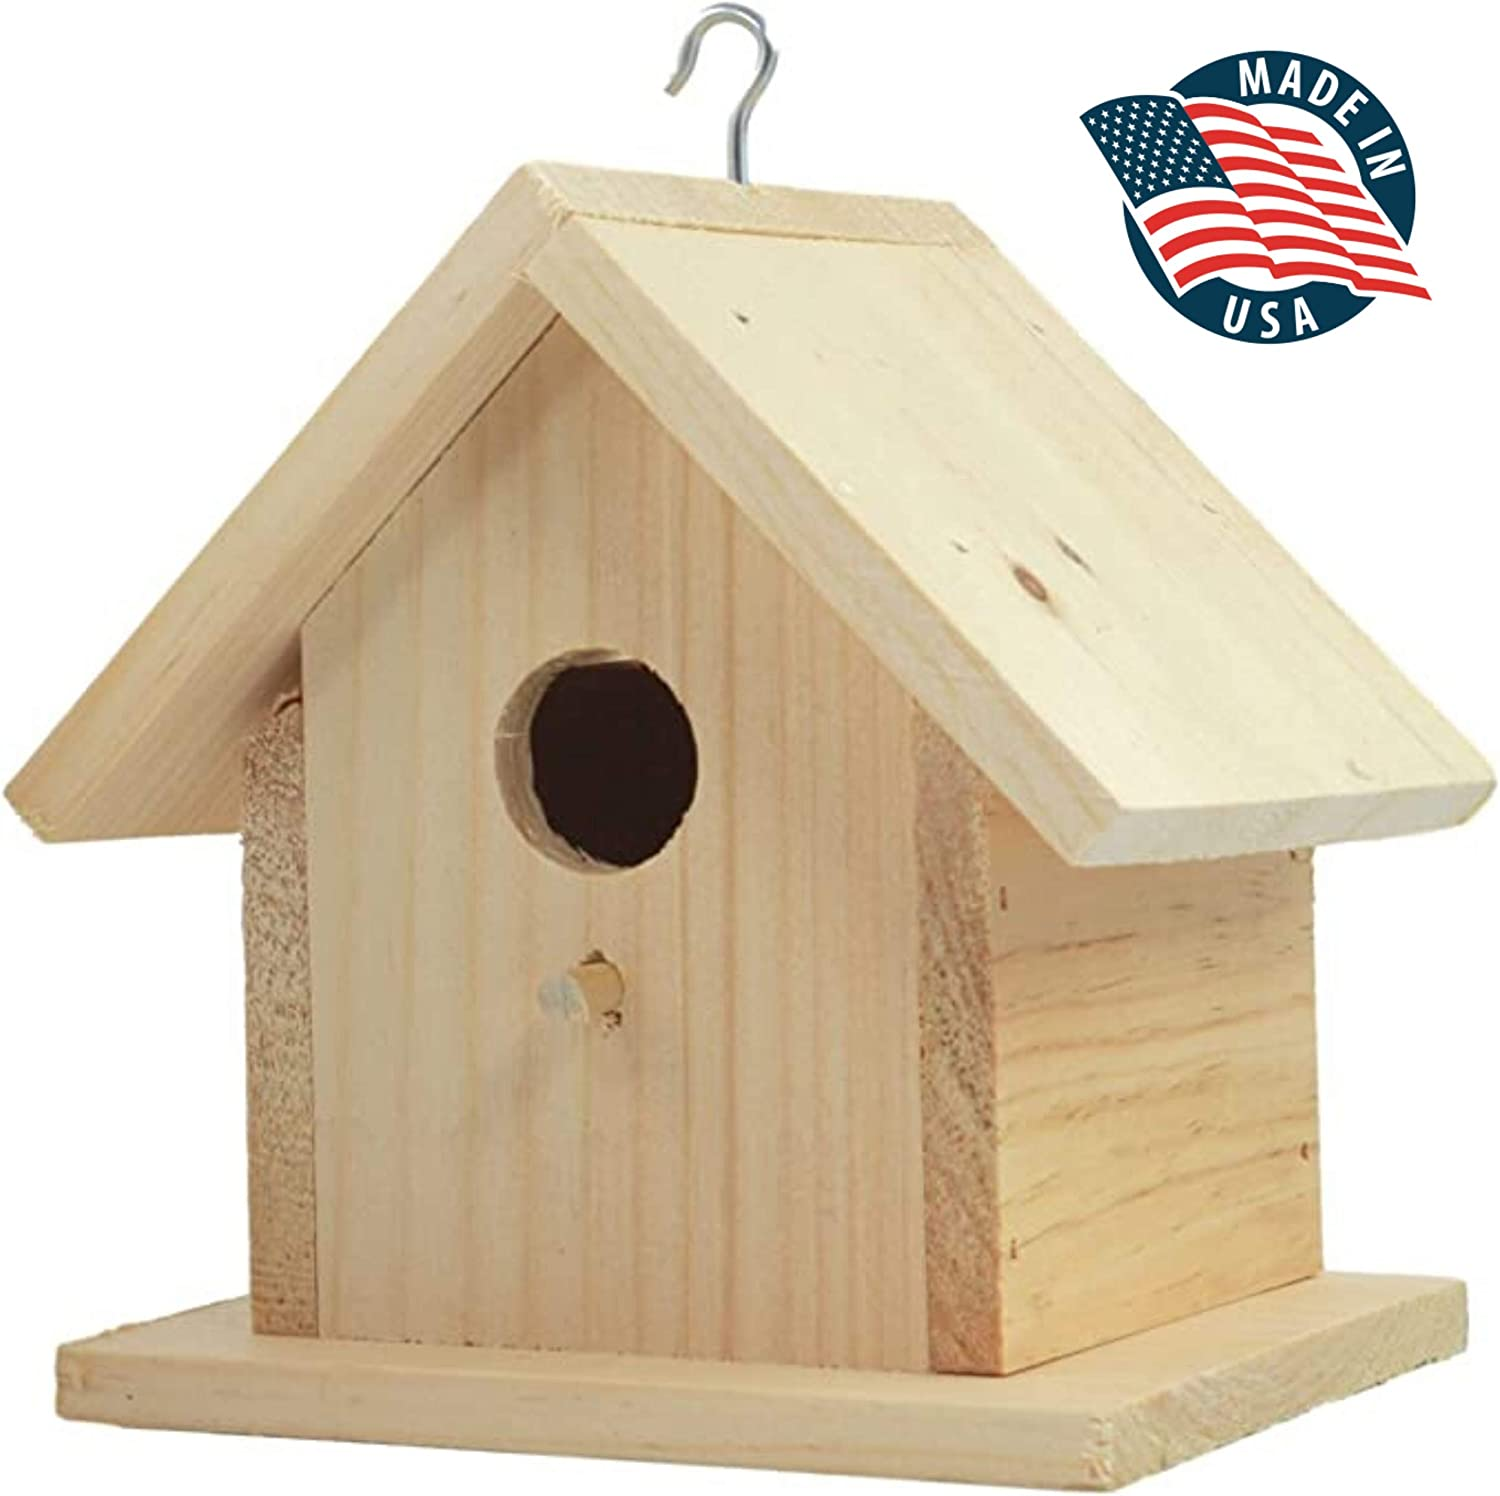 Unfinished Birdhouse to Paint for Birdwatching with Perch, Natural Wood Pine Frame for Finches and Songbirds, Heavy Duty Outdoor Hanging Use (7.5